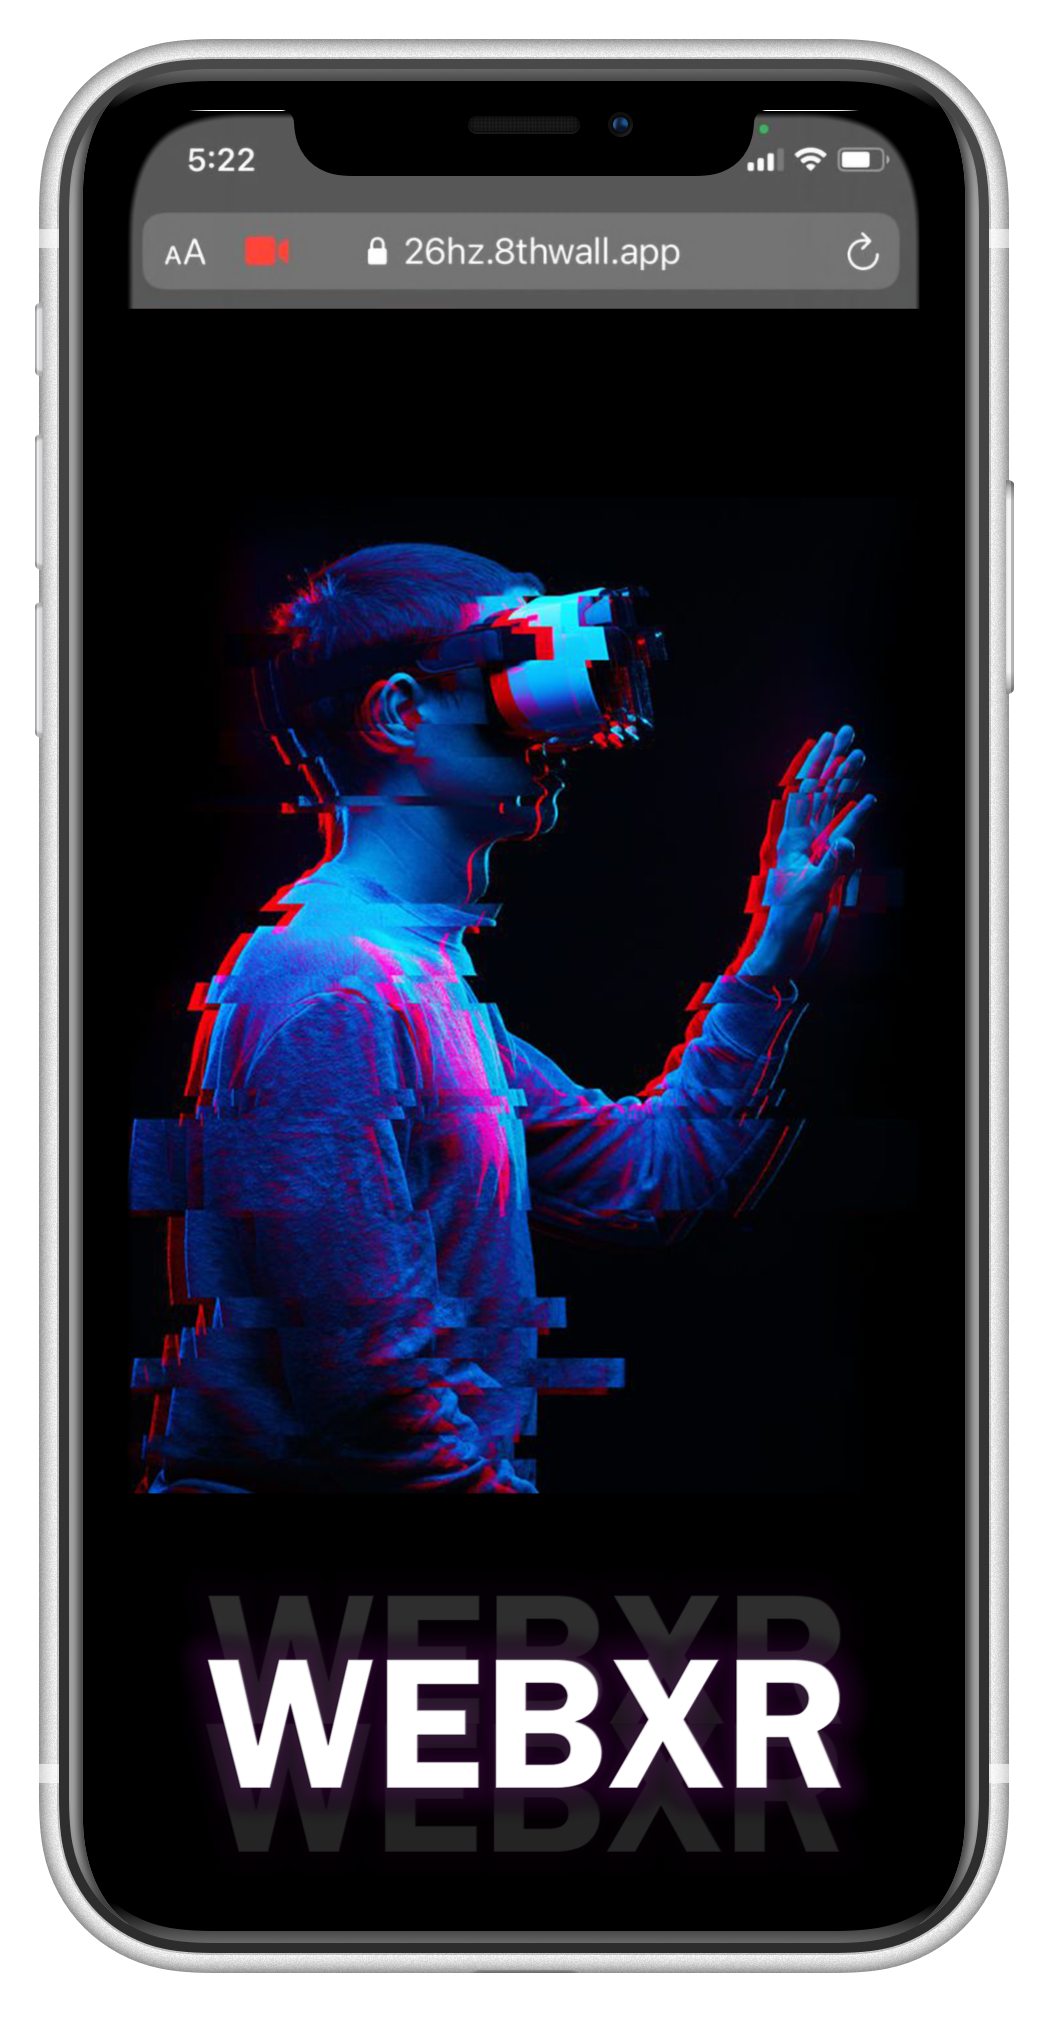 Mockup of a phone with a banner that says WebXR